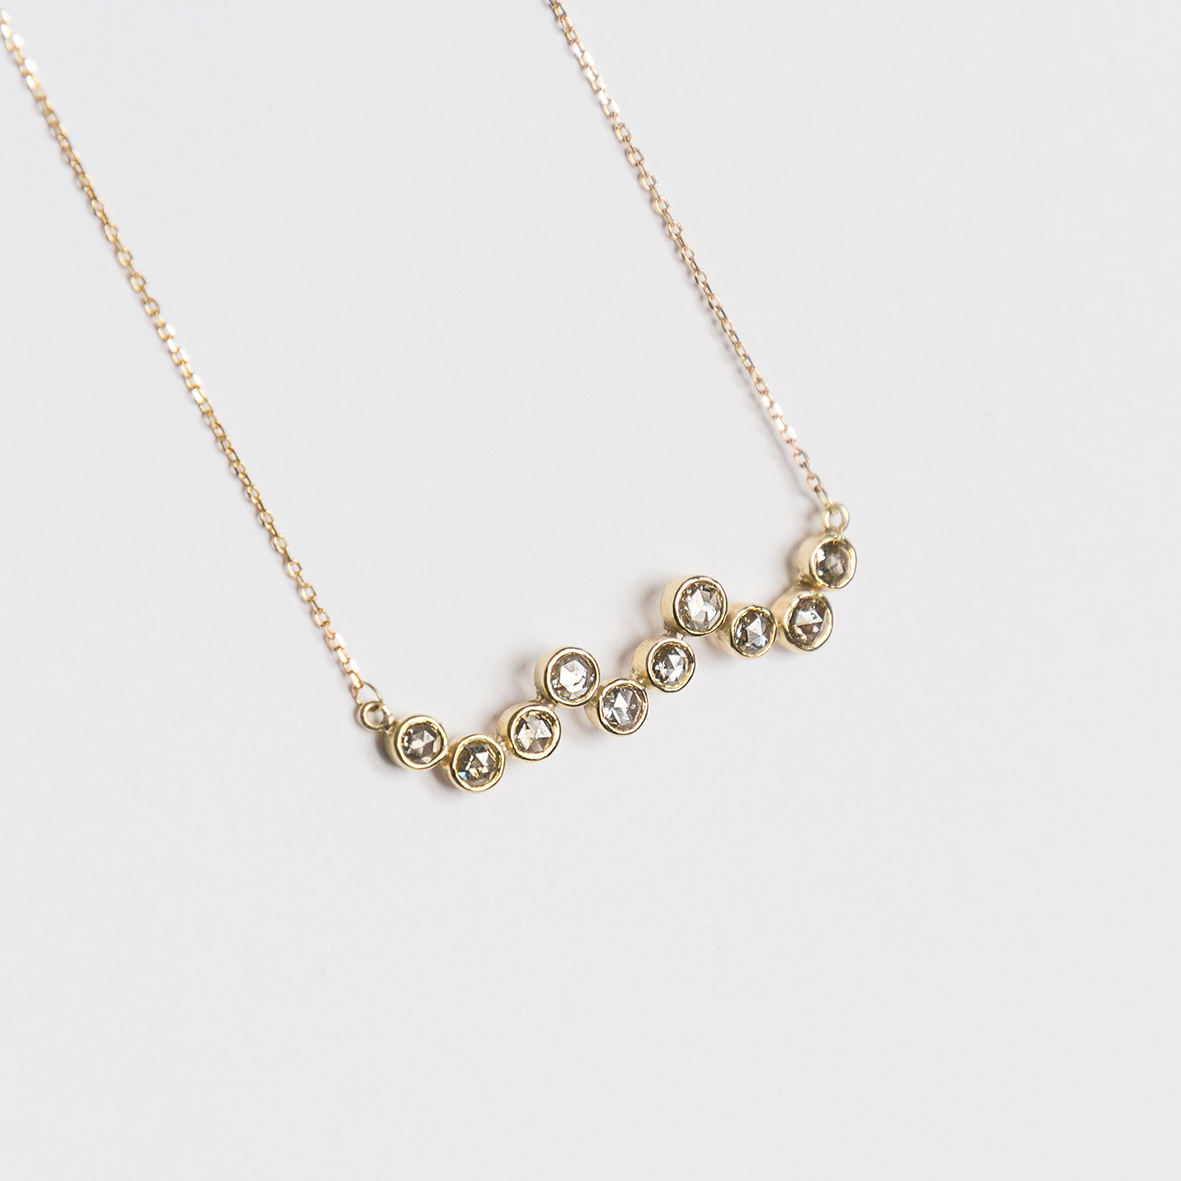 1. OONA_philo_ficha2_waves diamond necklace